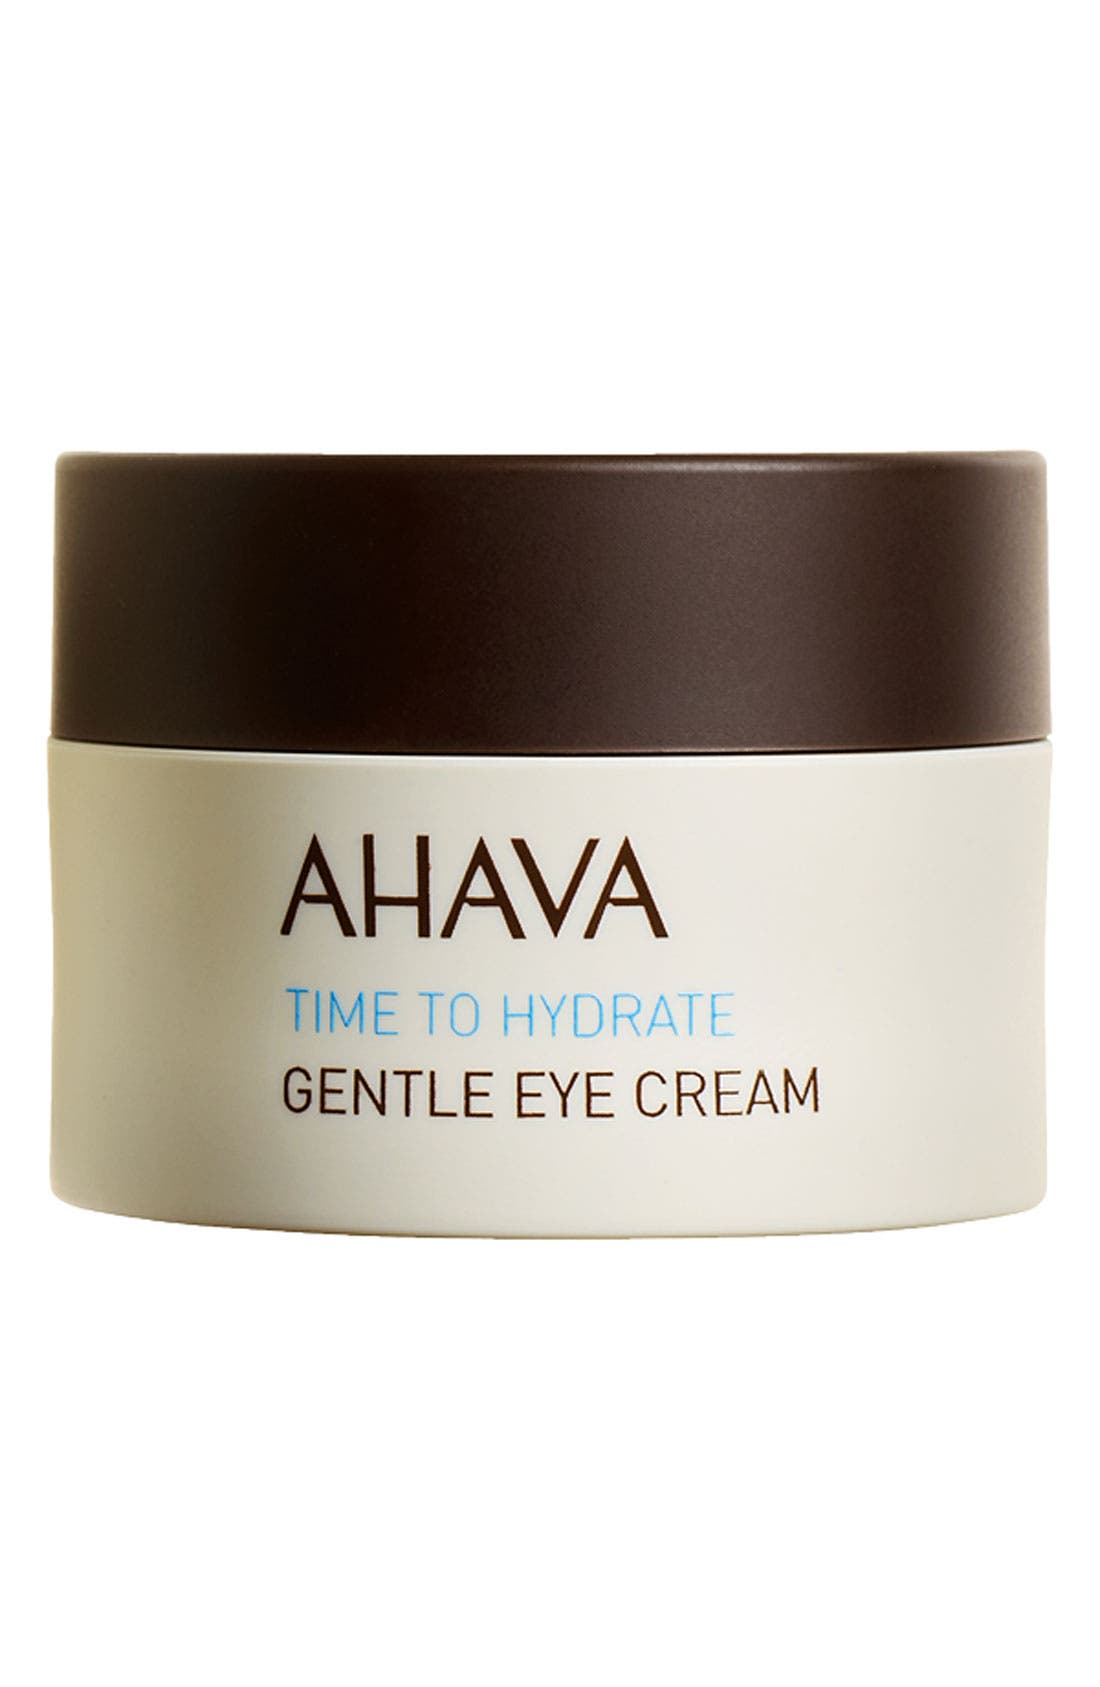 'Time to Hydrate' Gentle Eye Cream,                             Main thumbnail 1, color,                             000